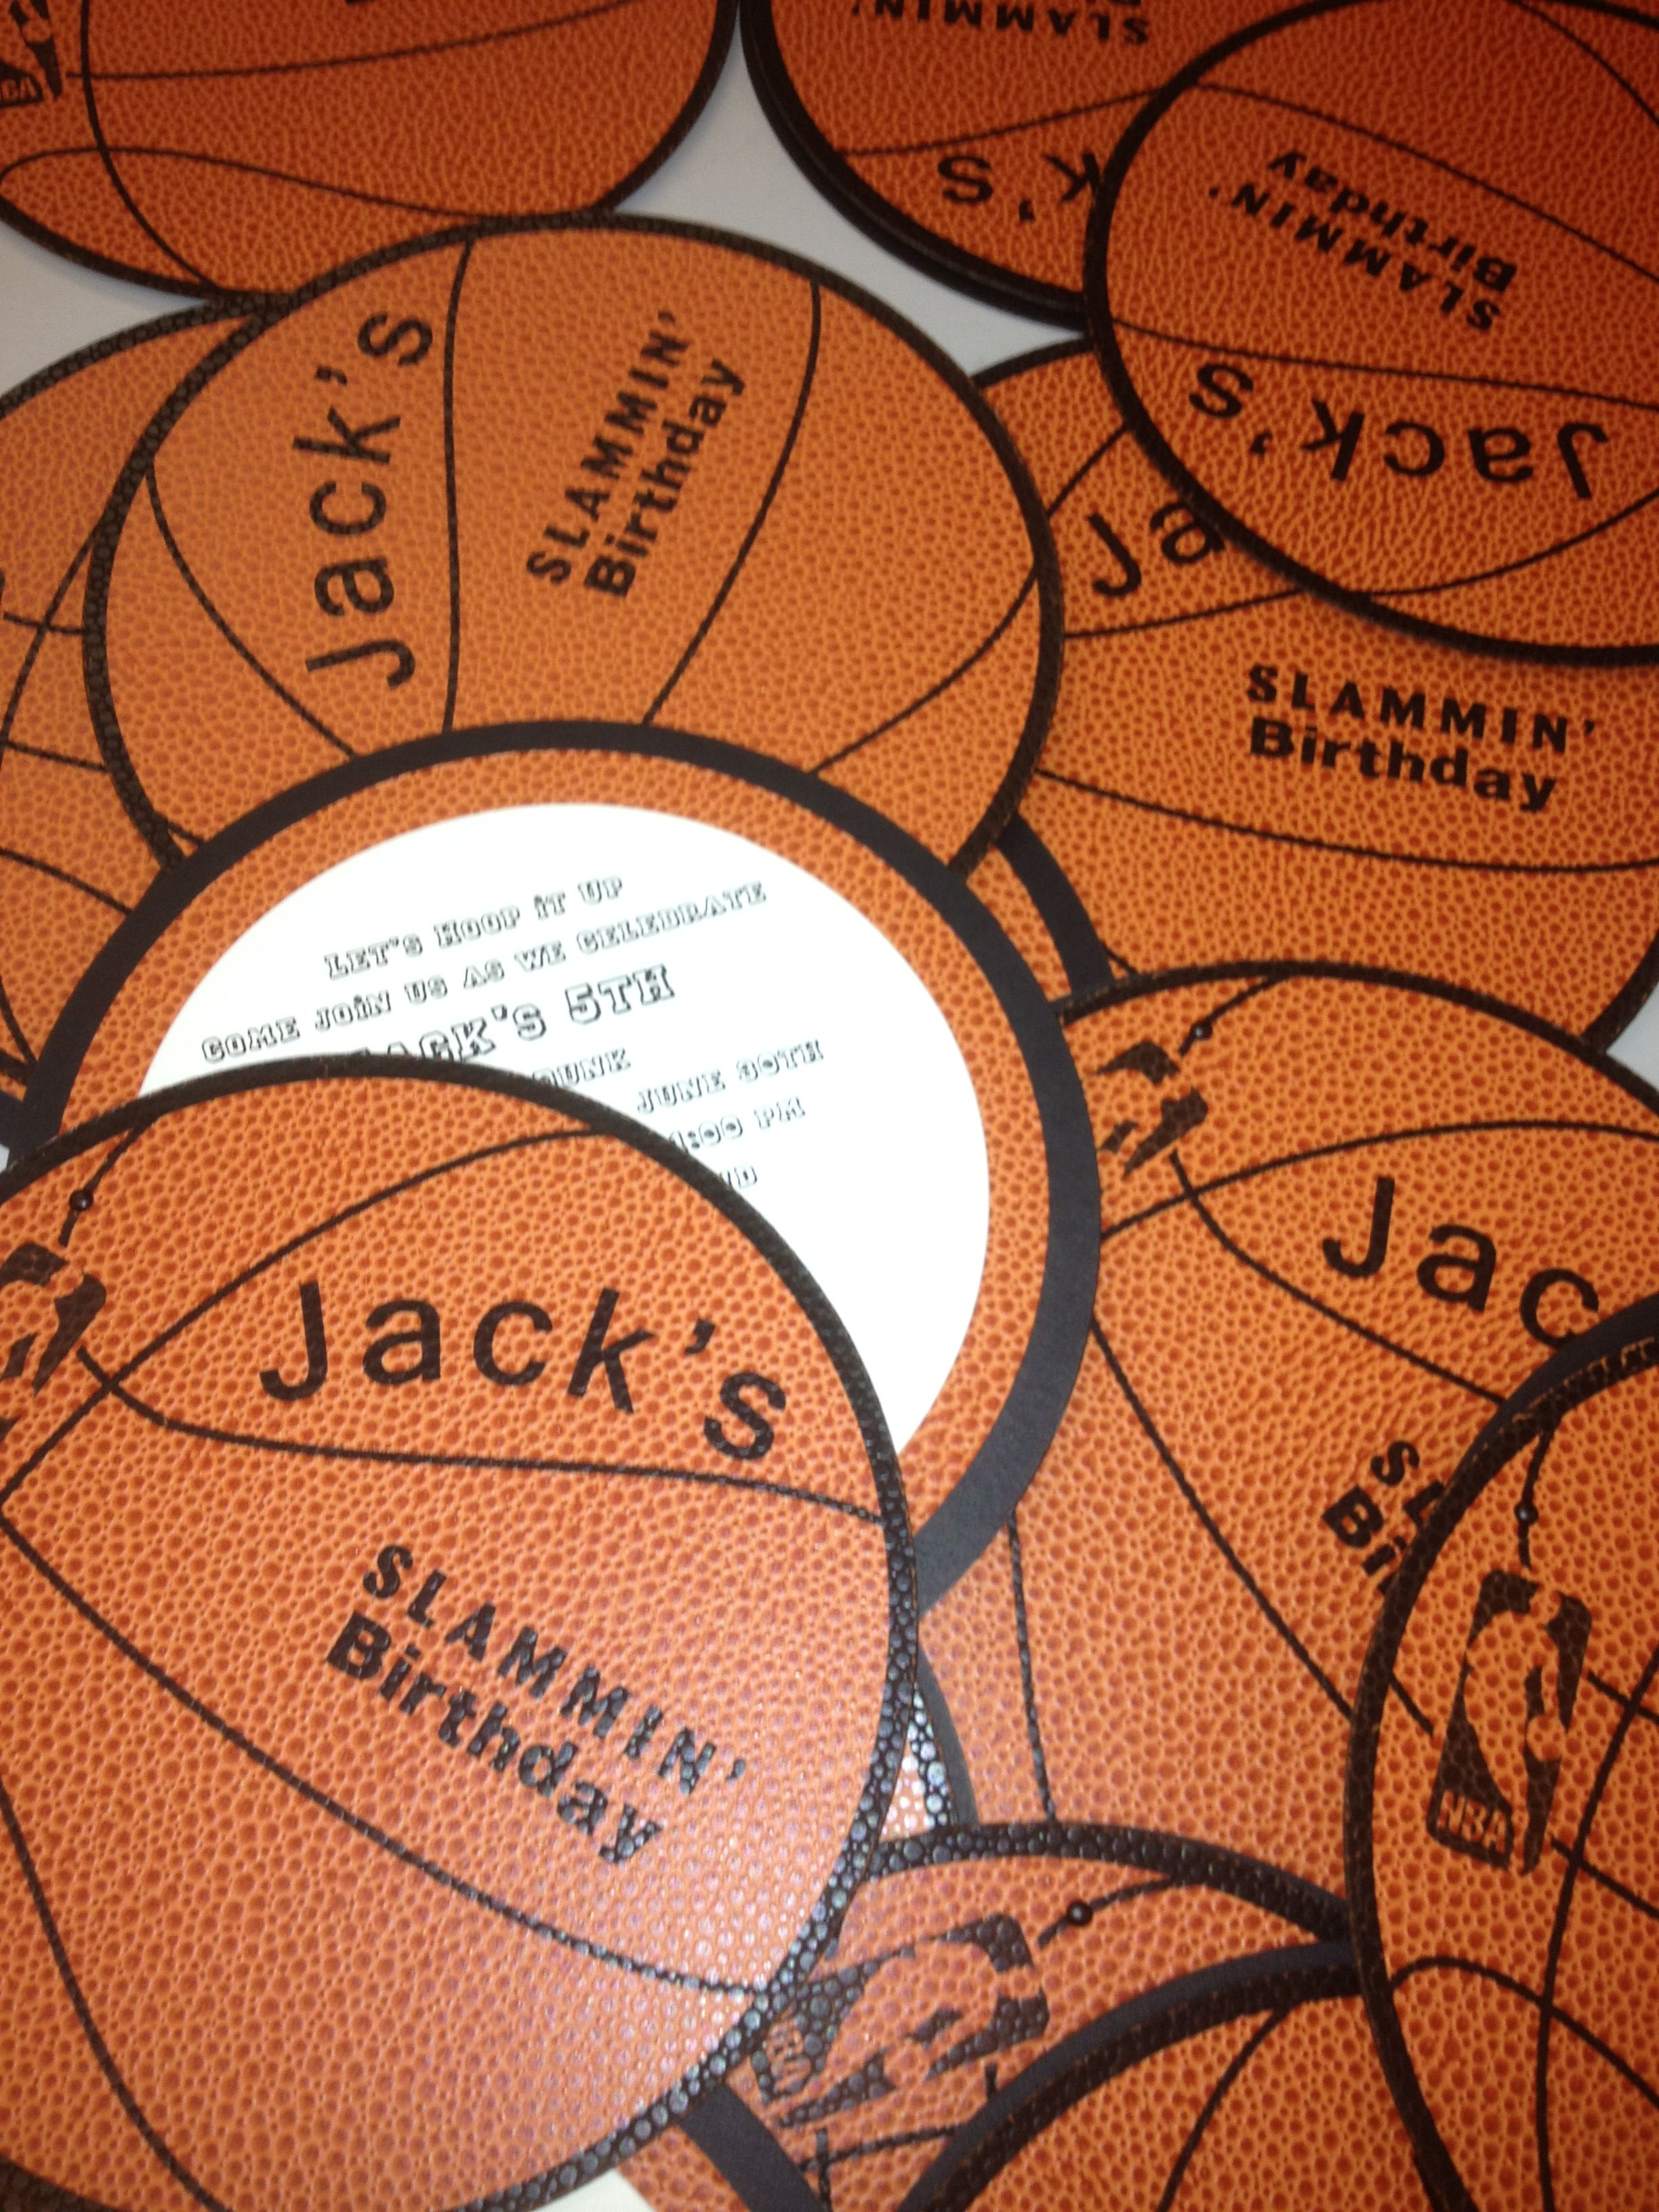 free printable basketball themed party invitations  last night, party invitations